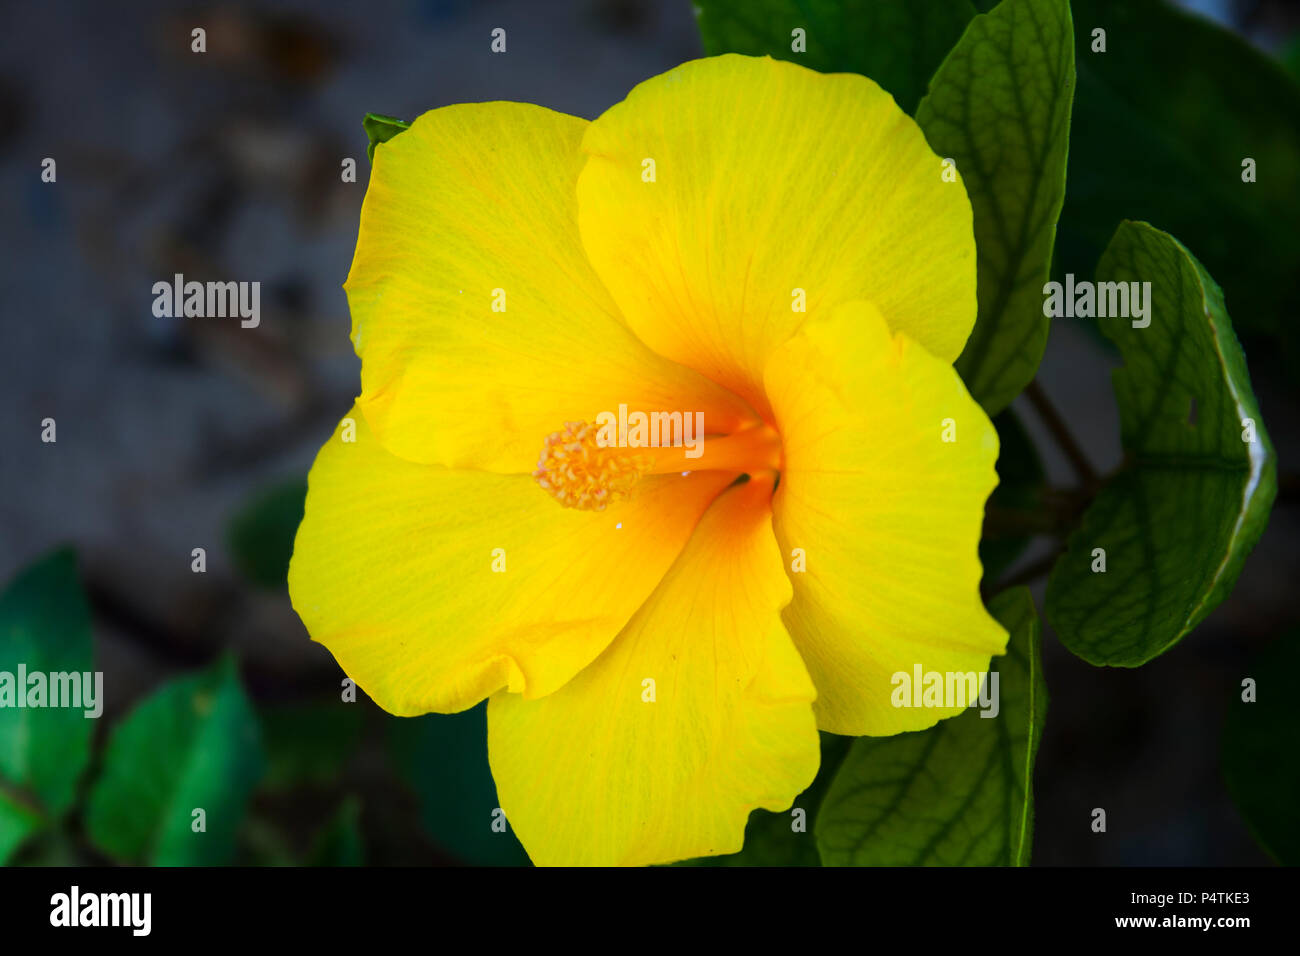 Yellow Flowers In India Stock Photo 209525179 Alamy